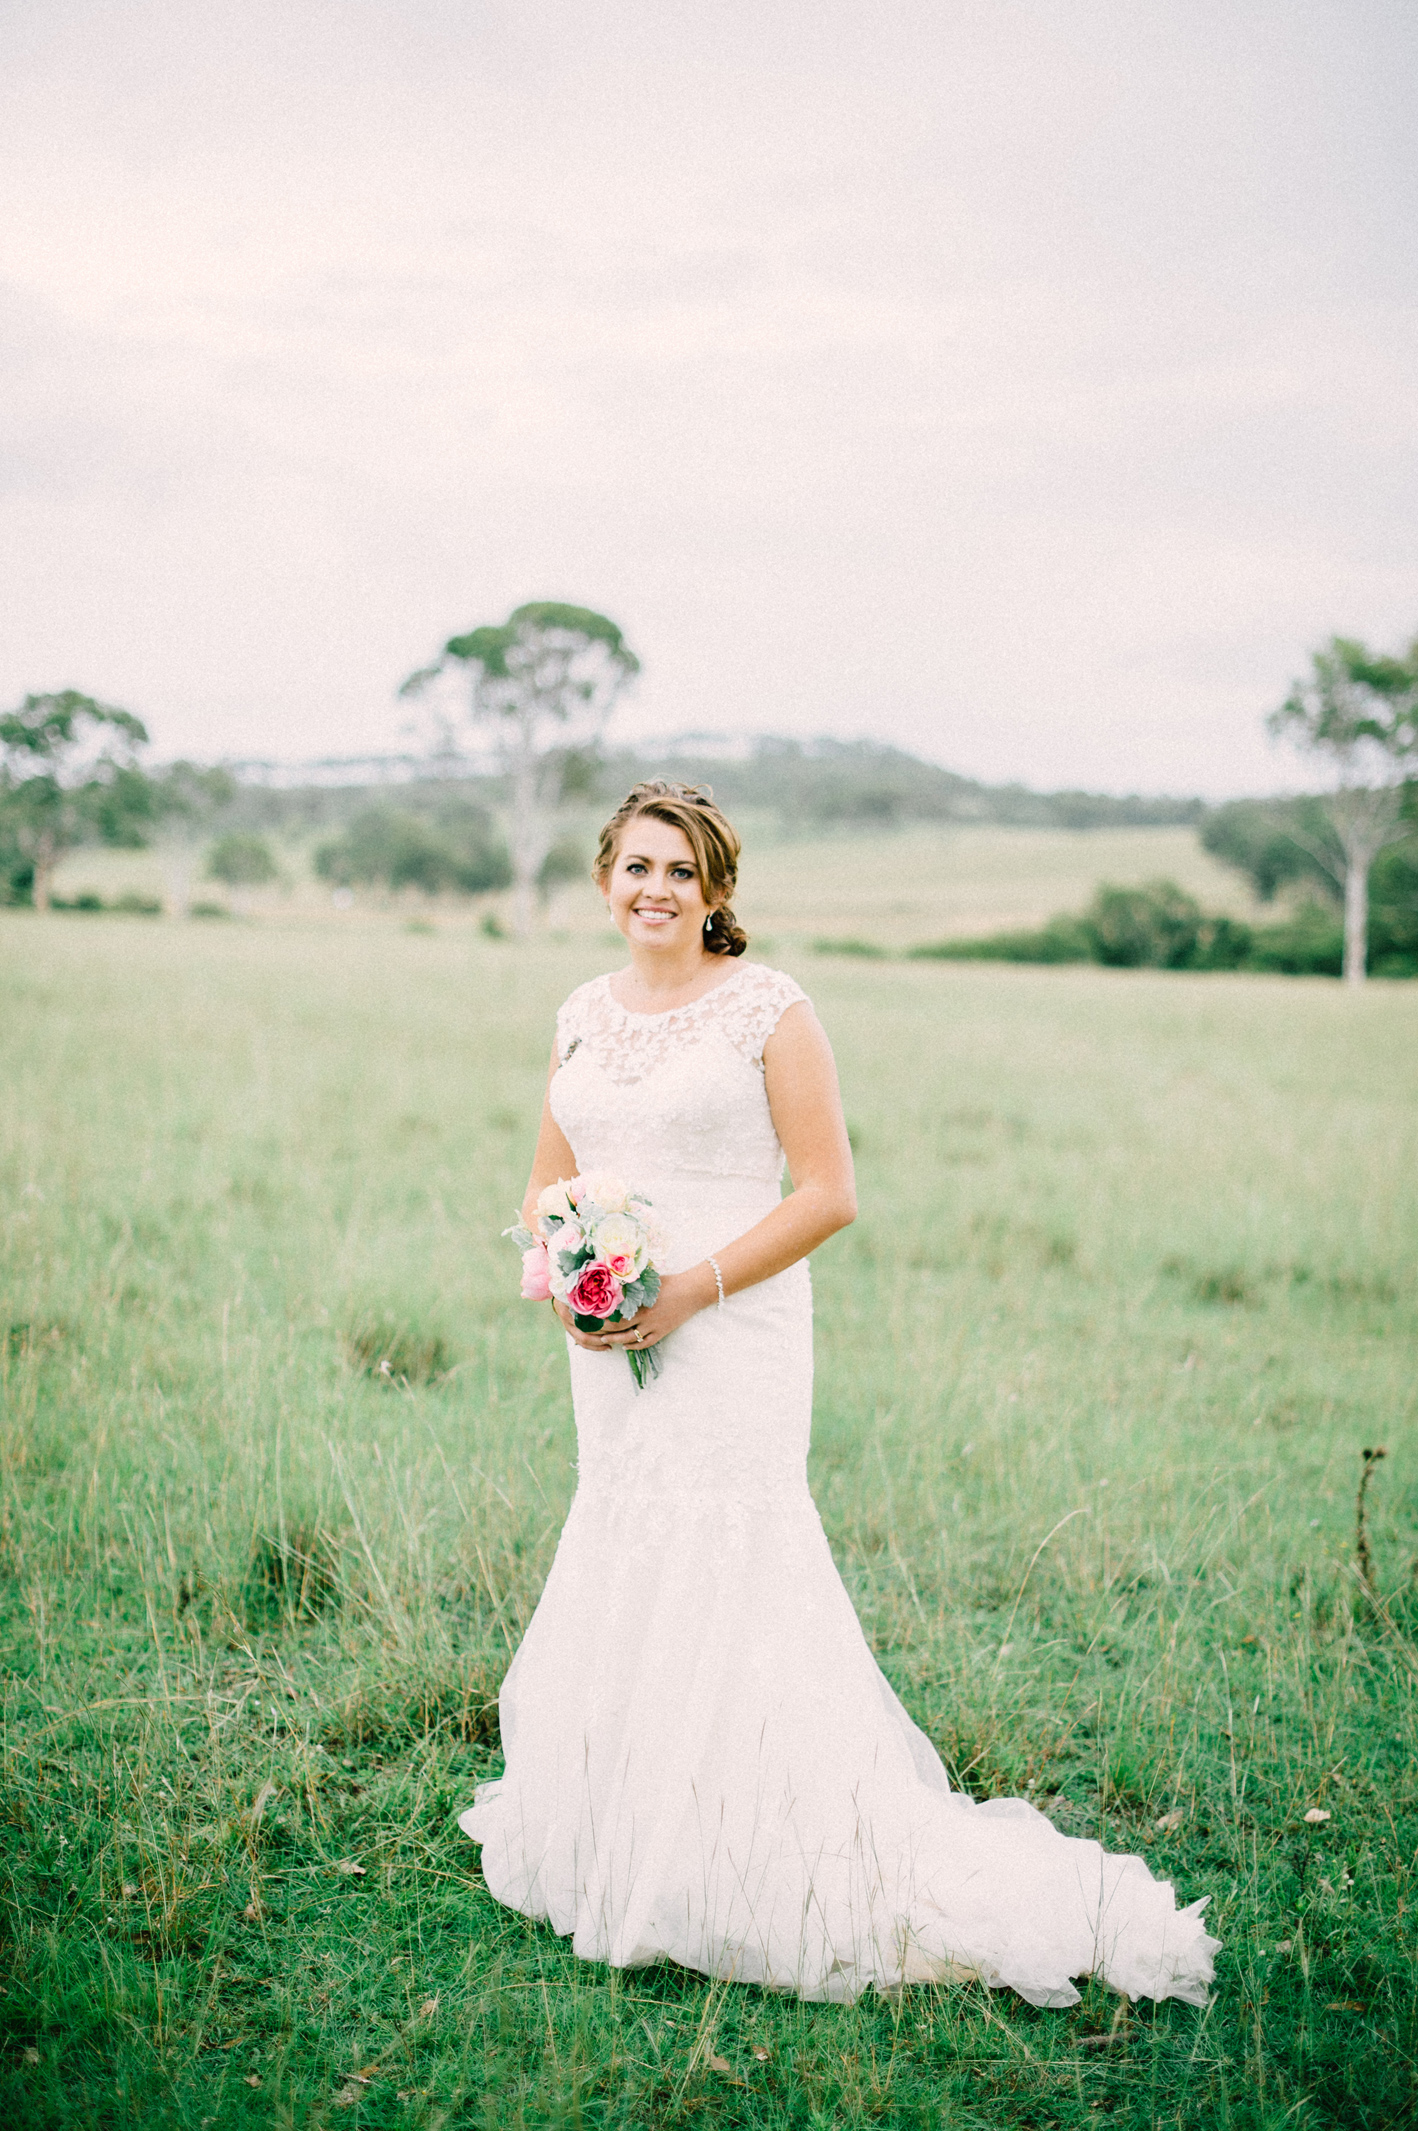 076-kayla-james-beaudesert-wedding-sophie-baker-photography